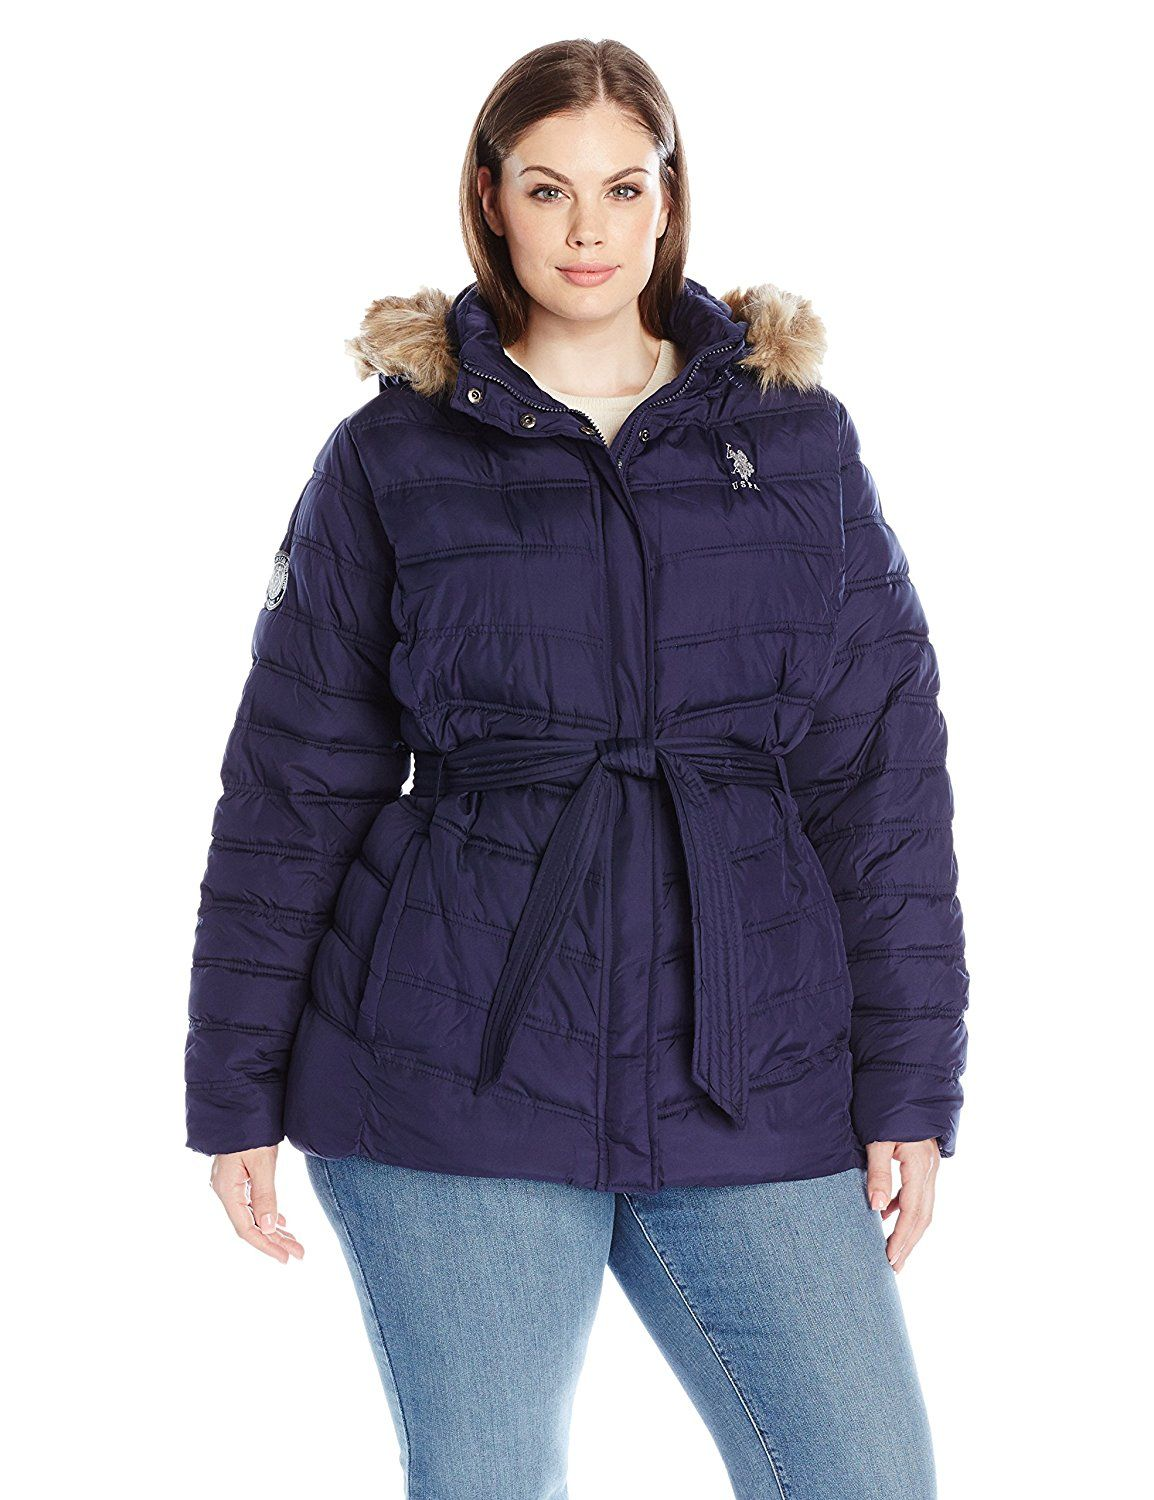 U S Polo Assn Women S Plus Size Belted Puffer Jacket With Faux Fur Hood Trim This Is An Amazon Aff Faux Fur Hood Trim Coats Jackets Women Plus Size Belts [ 1500 x 1154 Pixel ]